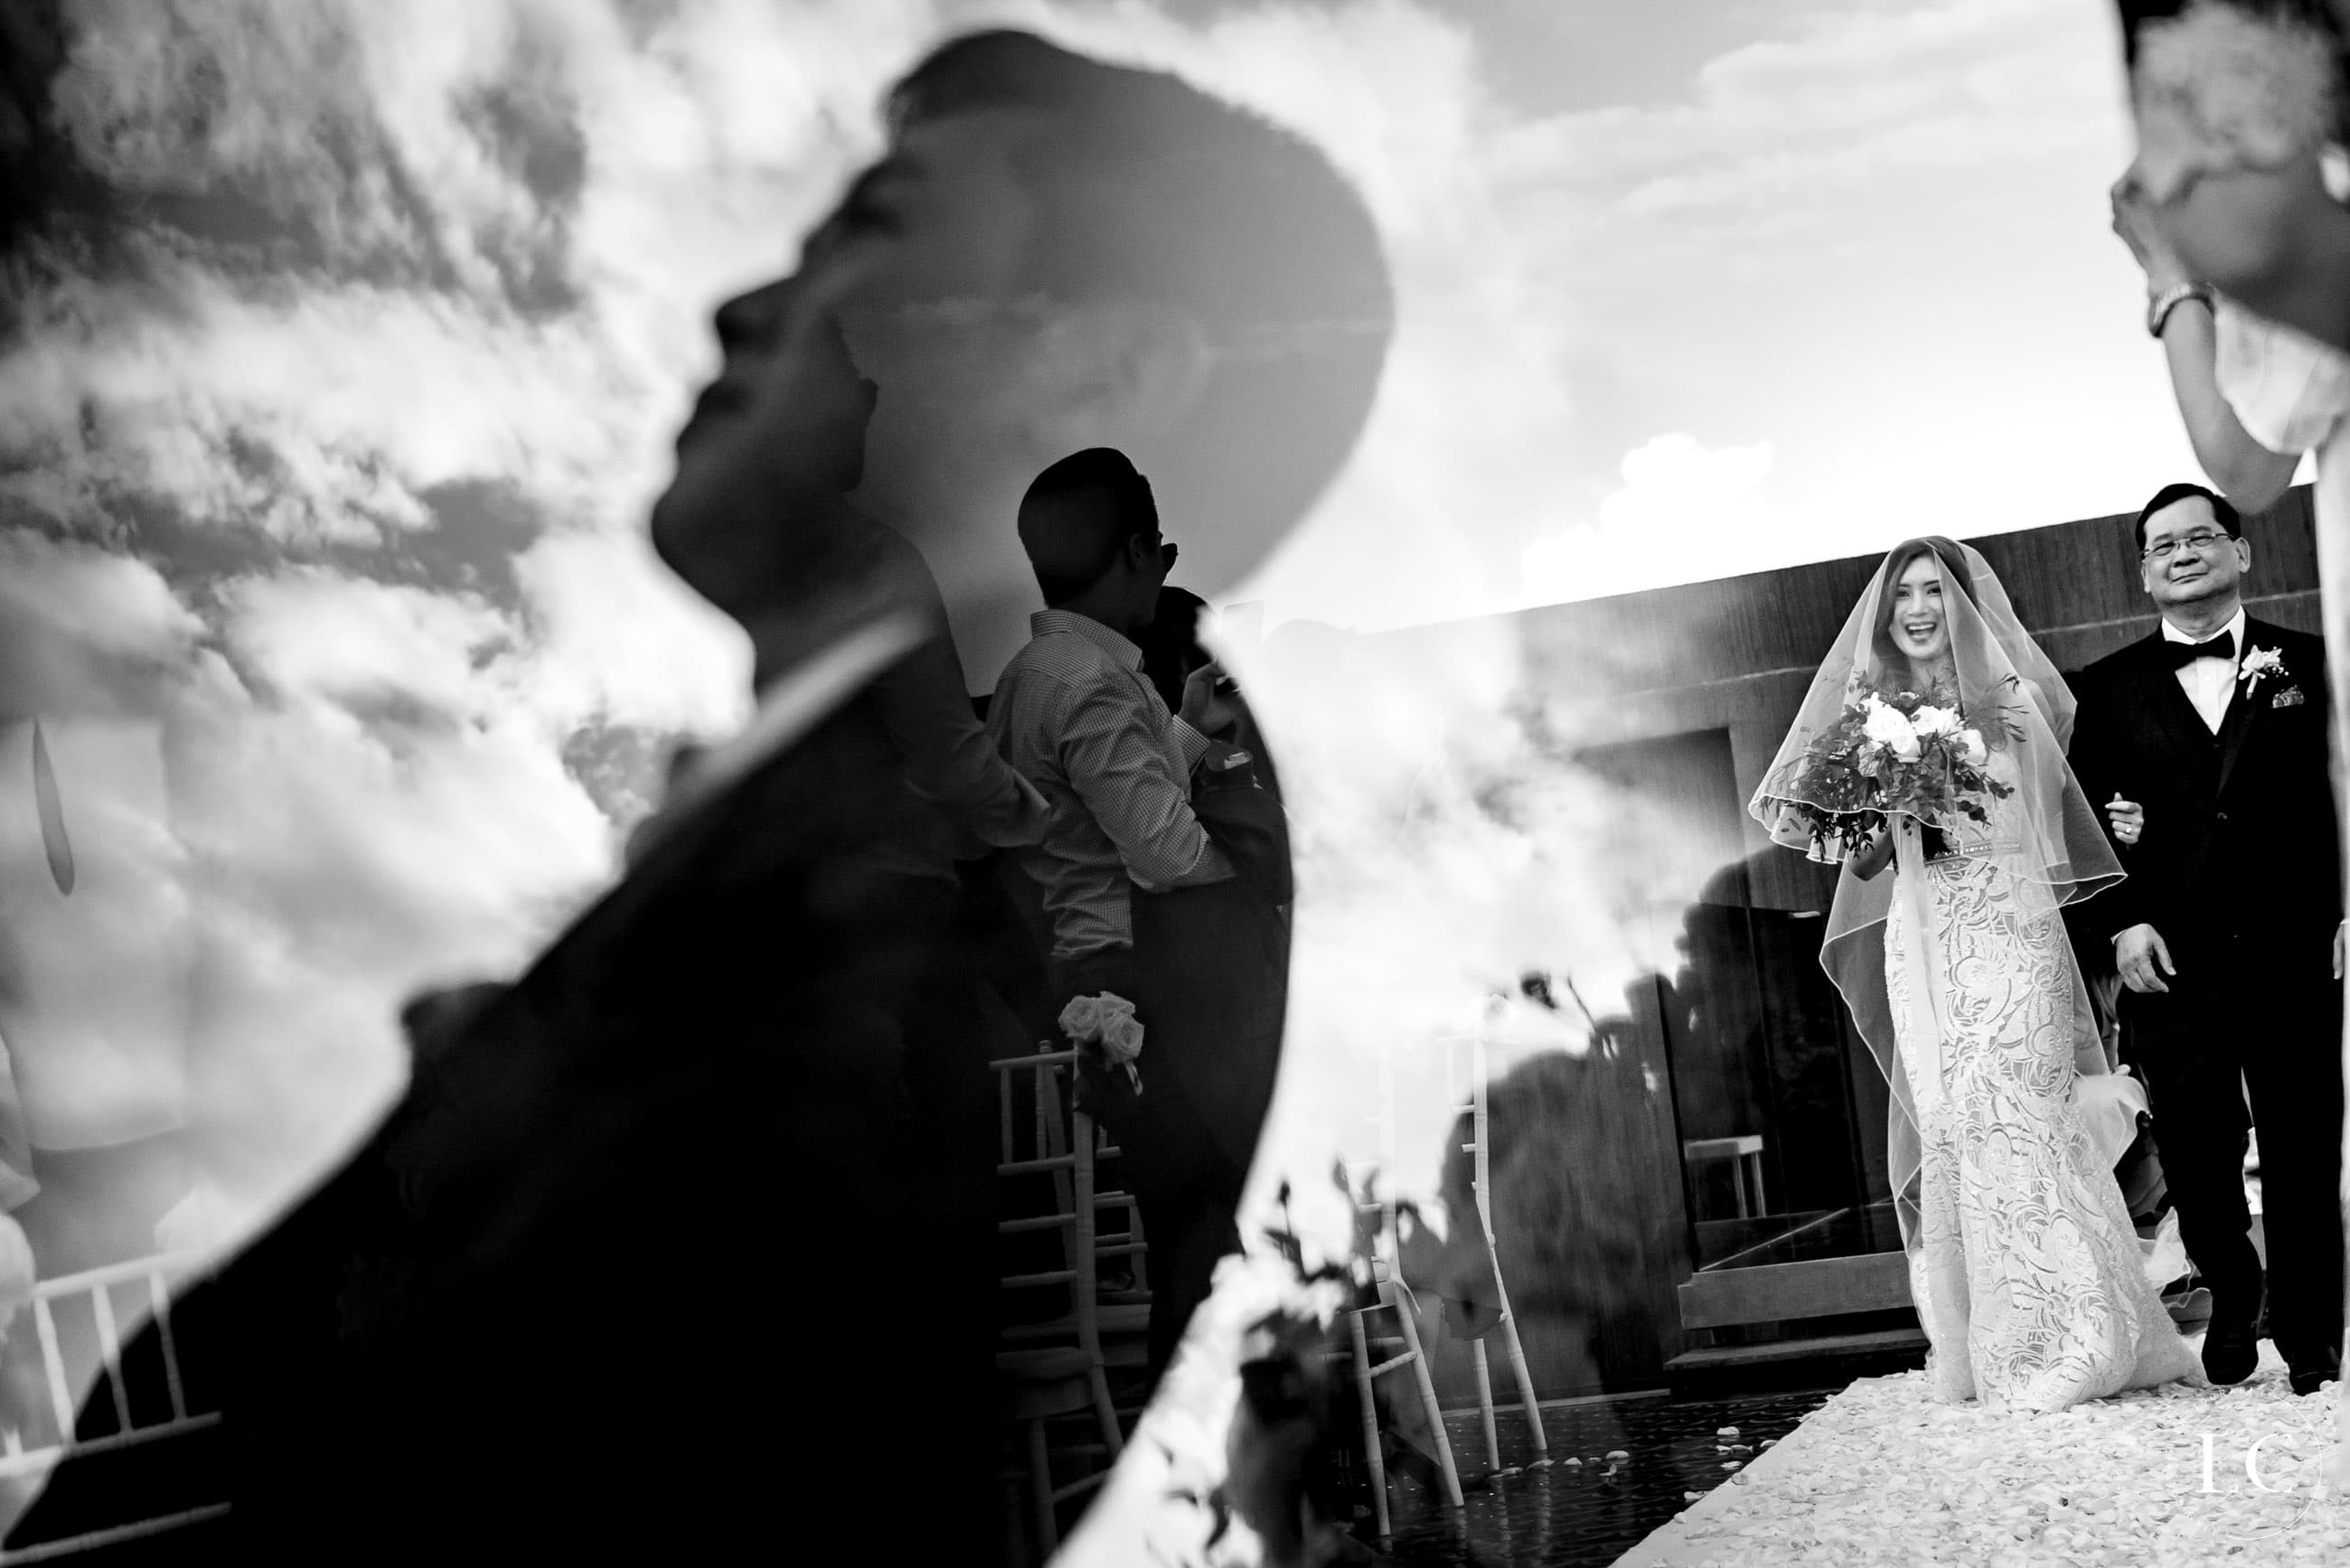 silhouette of wedding guest